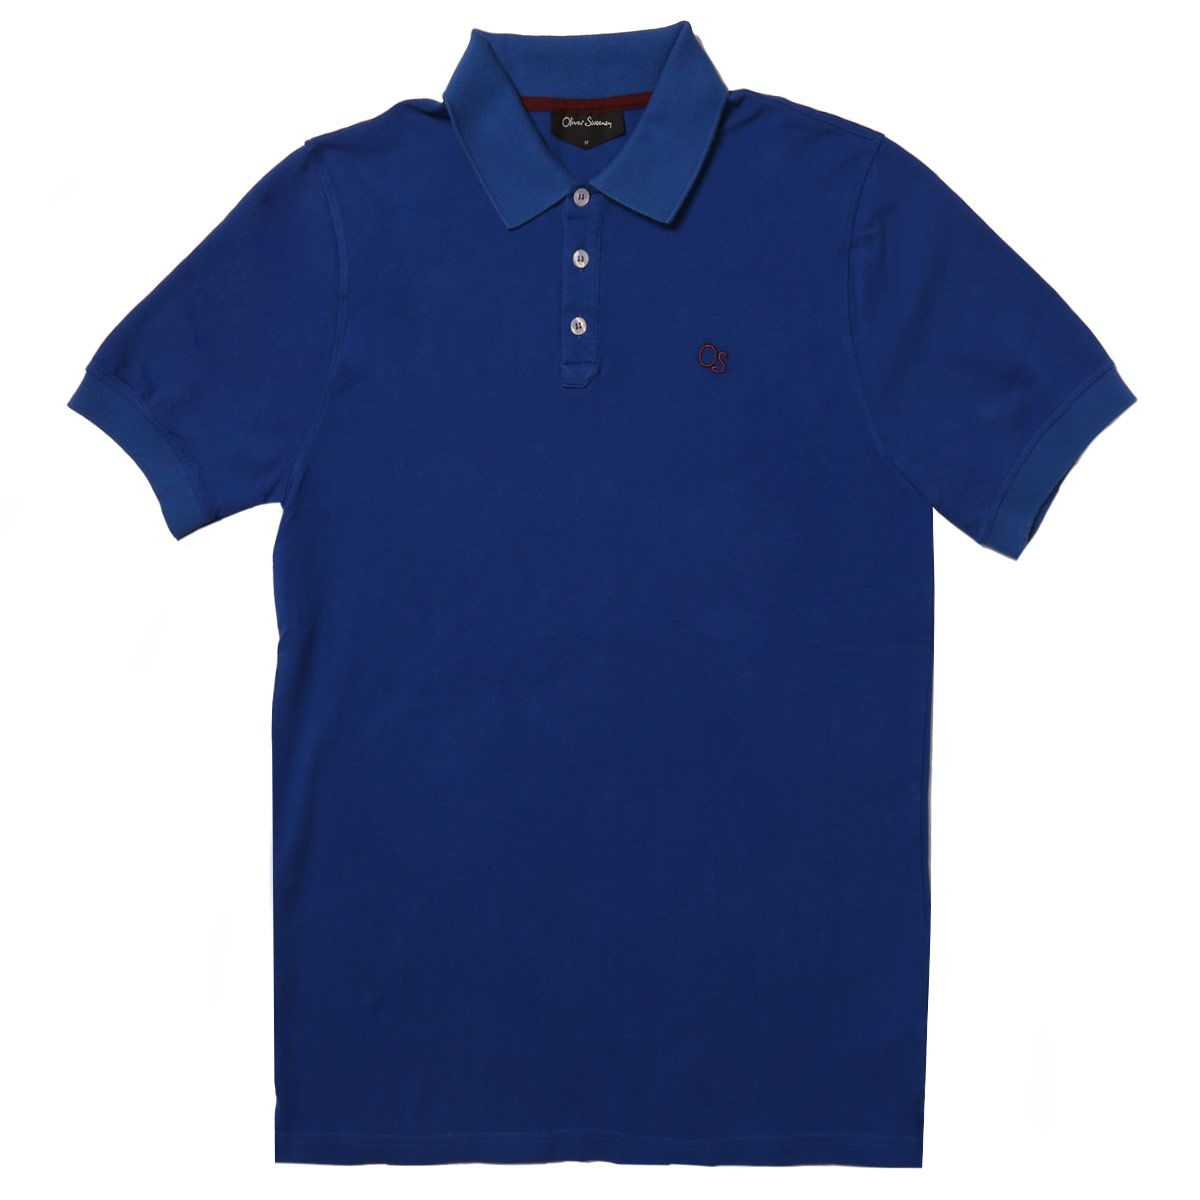 Oliver Sweeney Wollaton Cobalt - Cotton Pique Polo Shirt